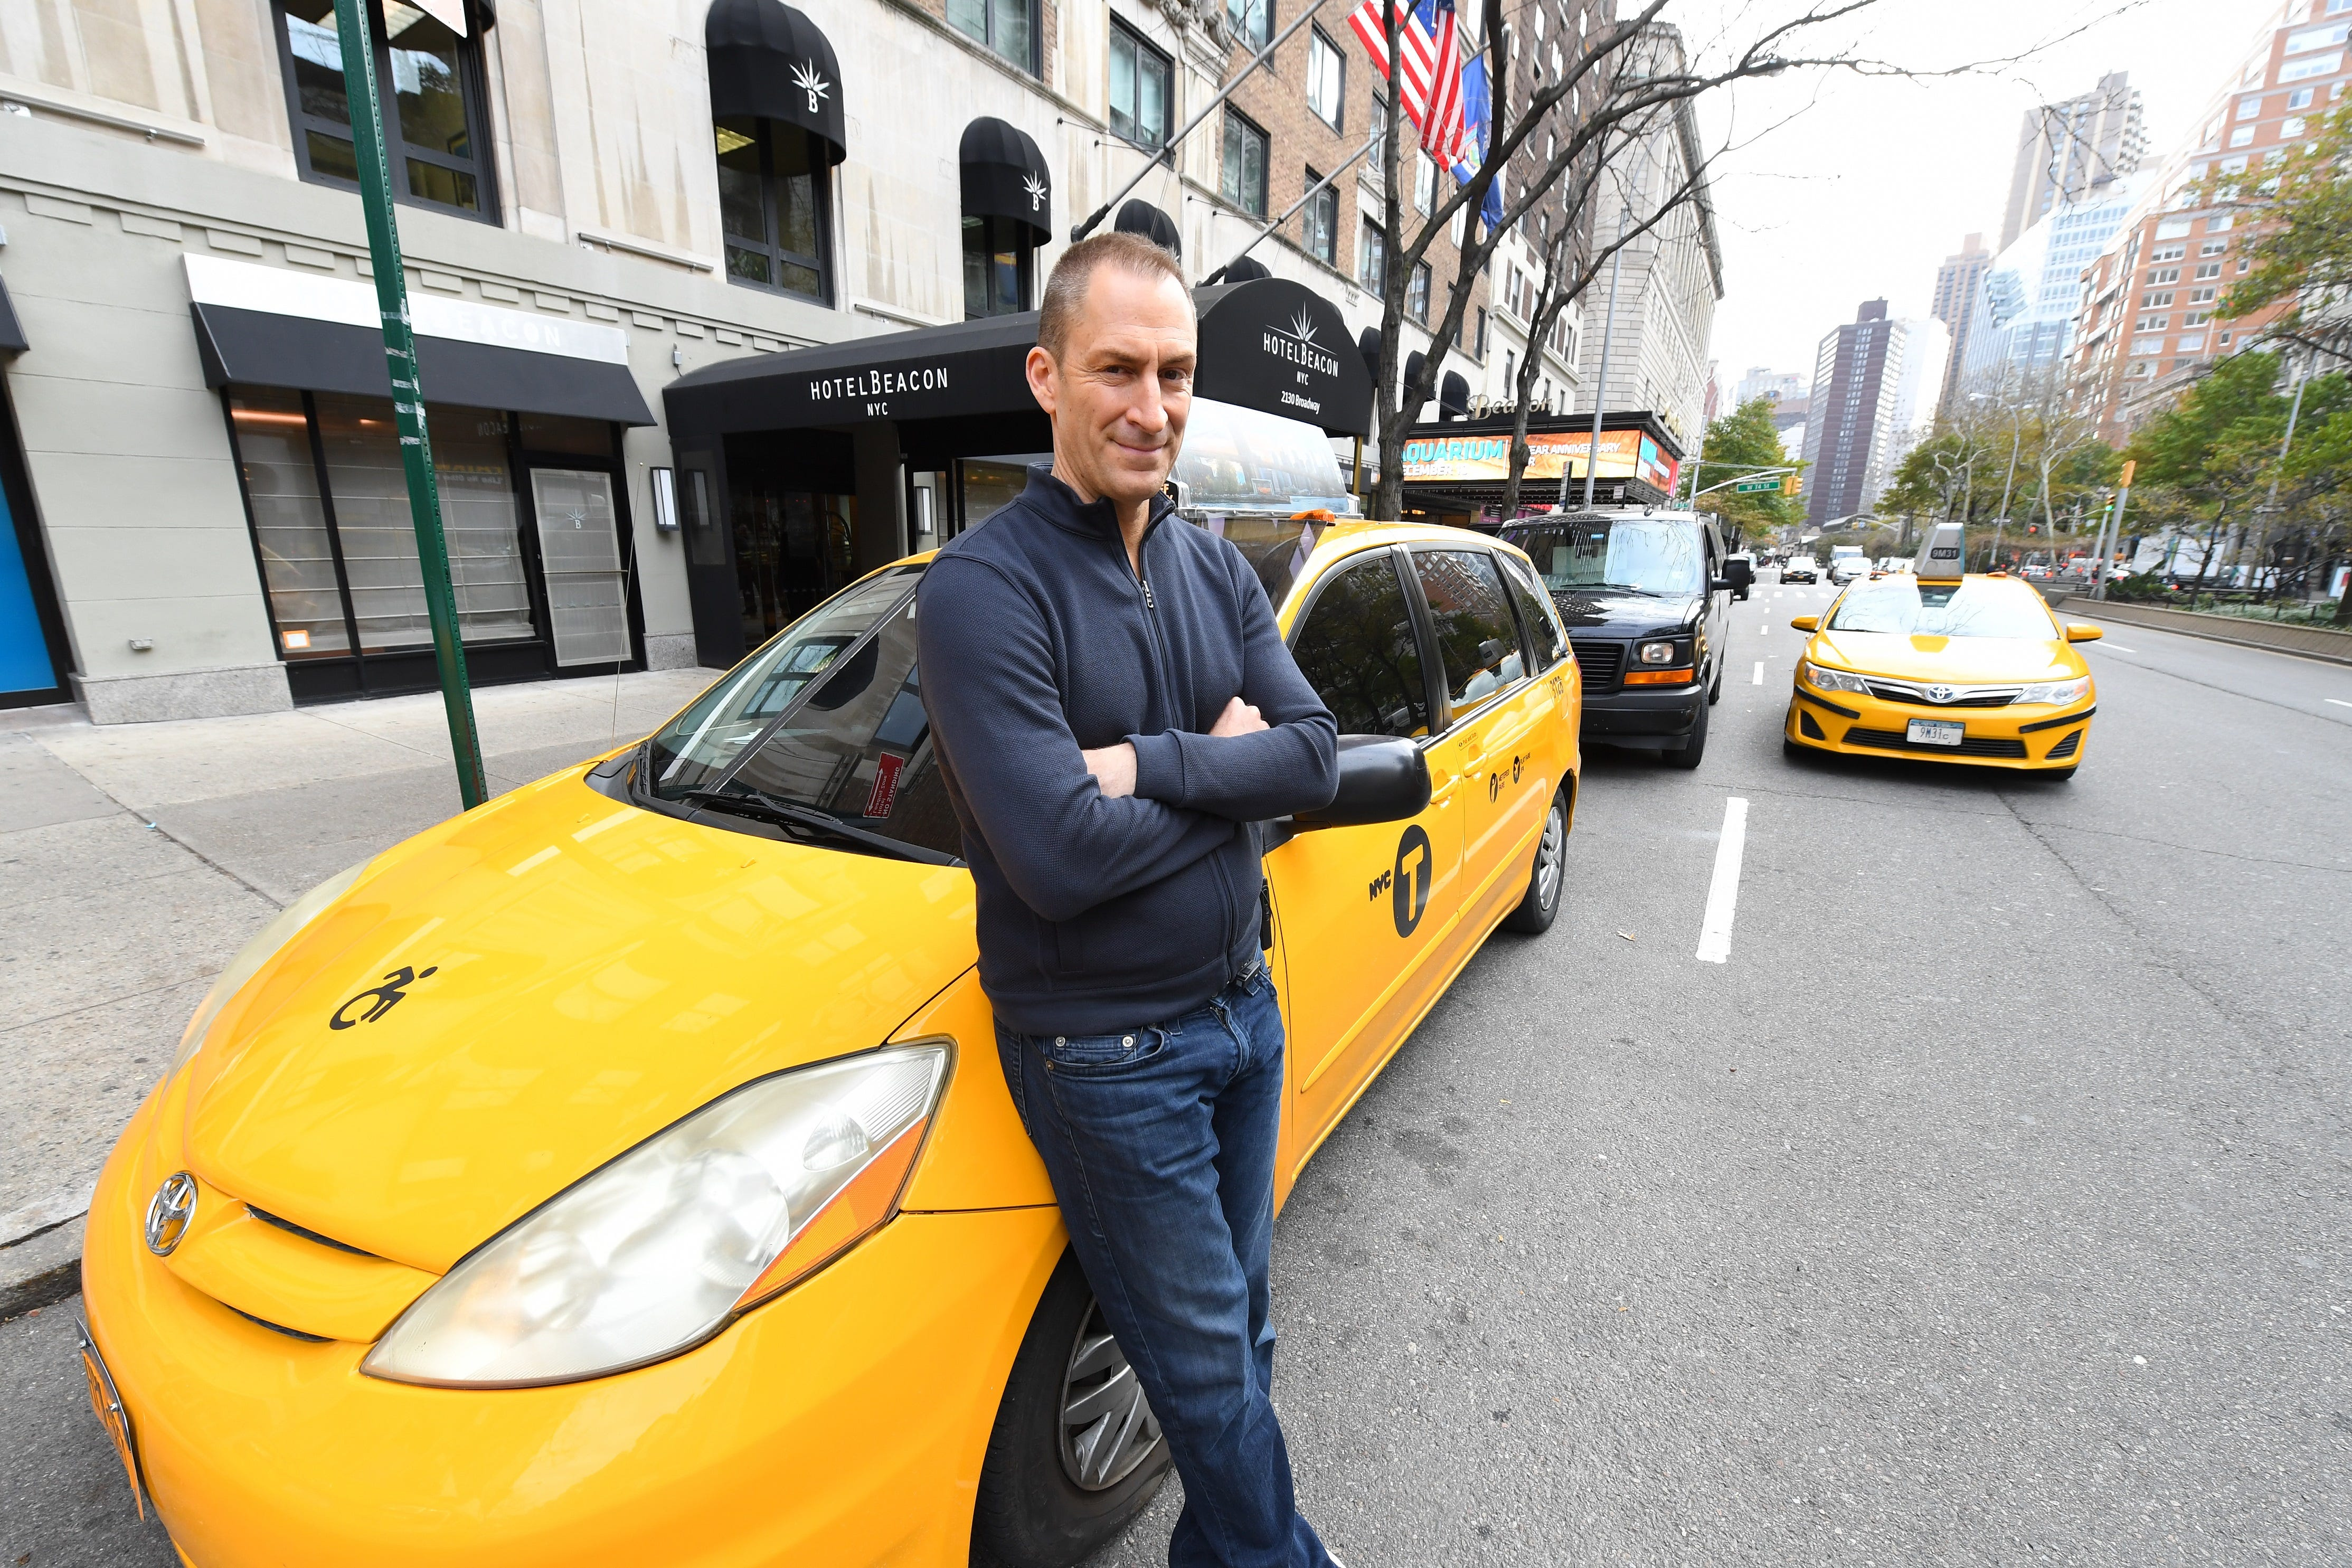 Play cash cab game online casino broadway